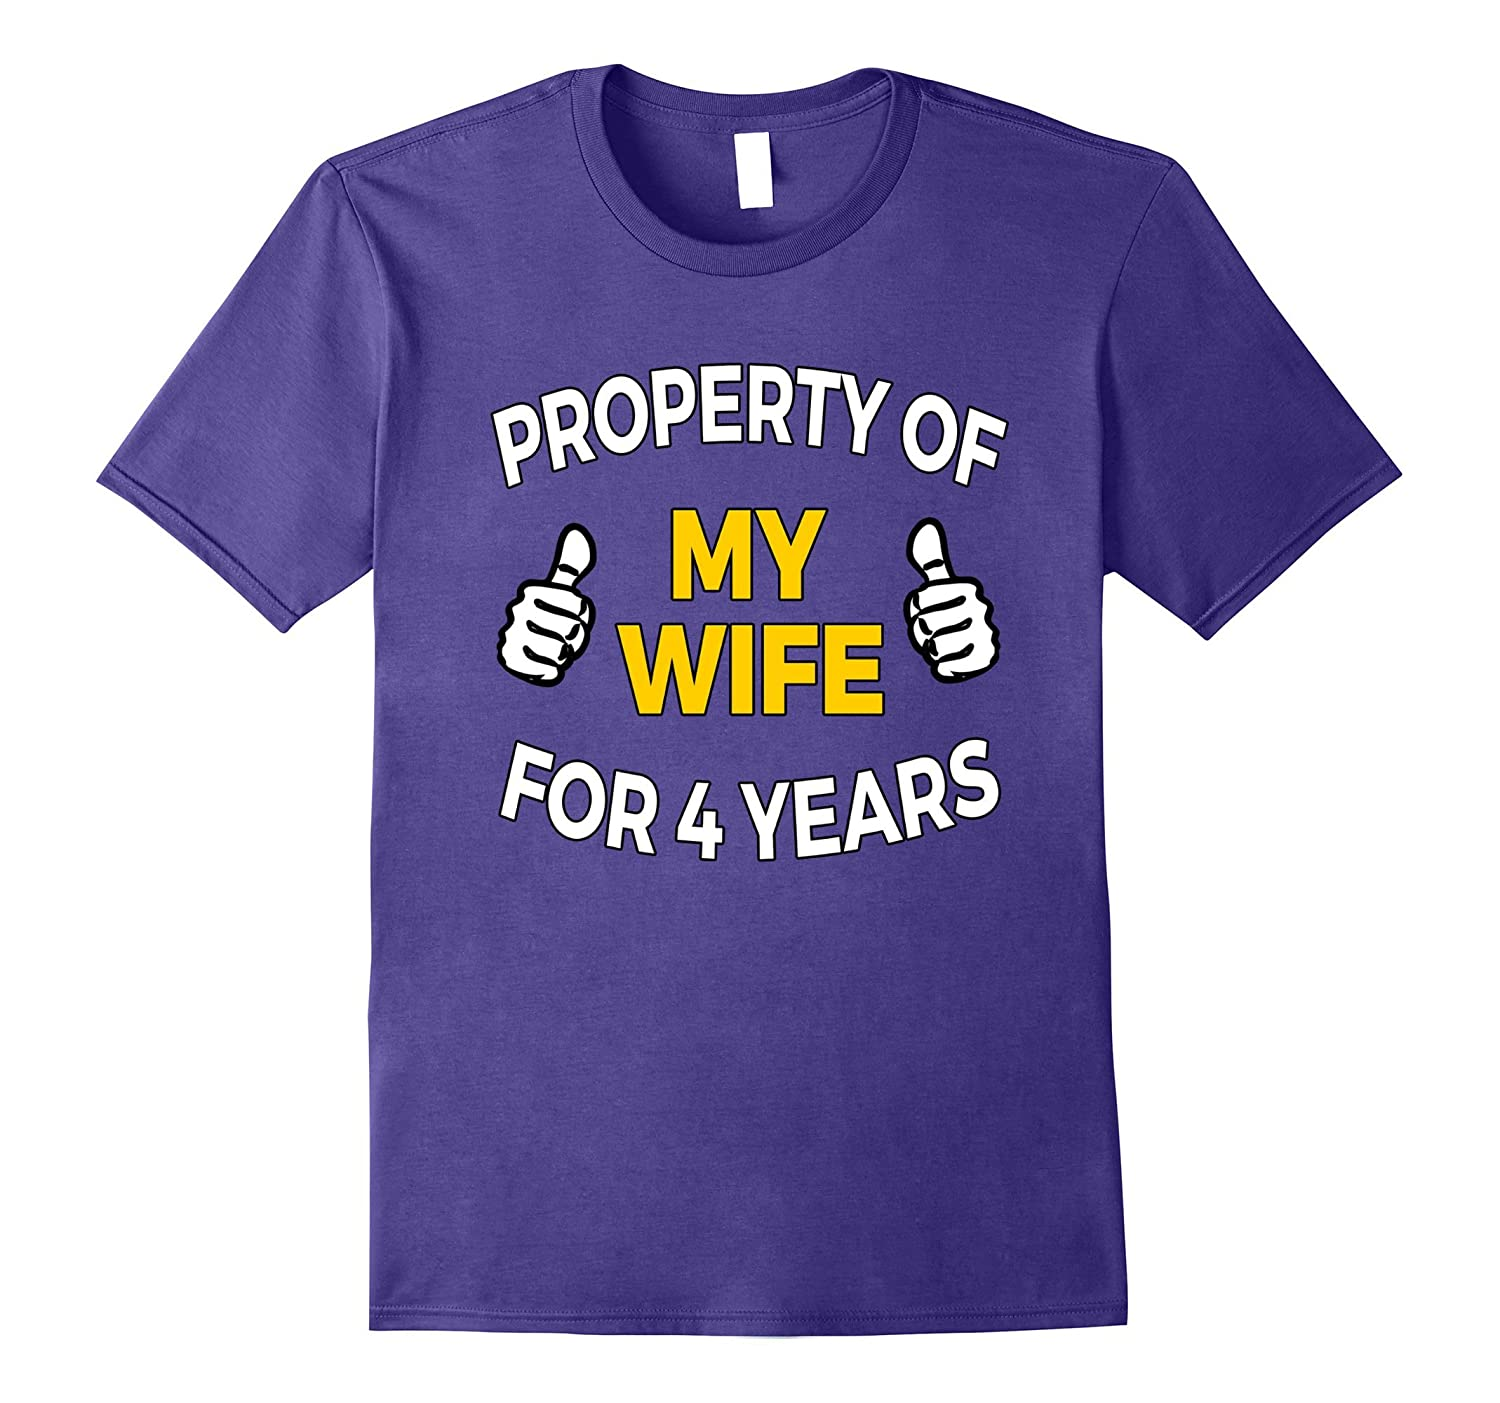 4th anniversary t shirt : Mens property of my wife for years t shirt th